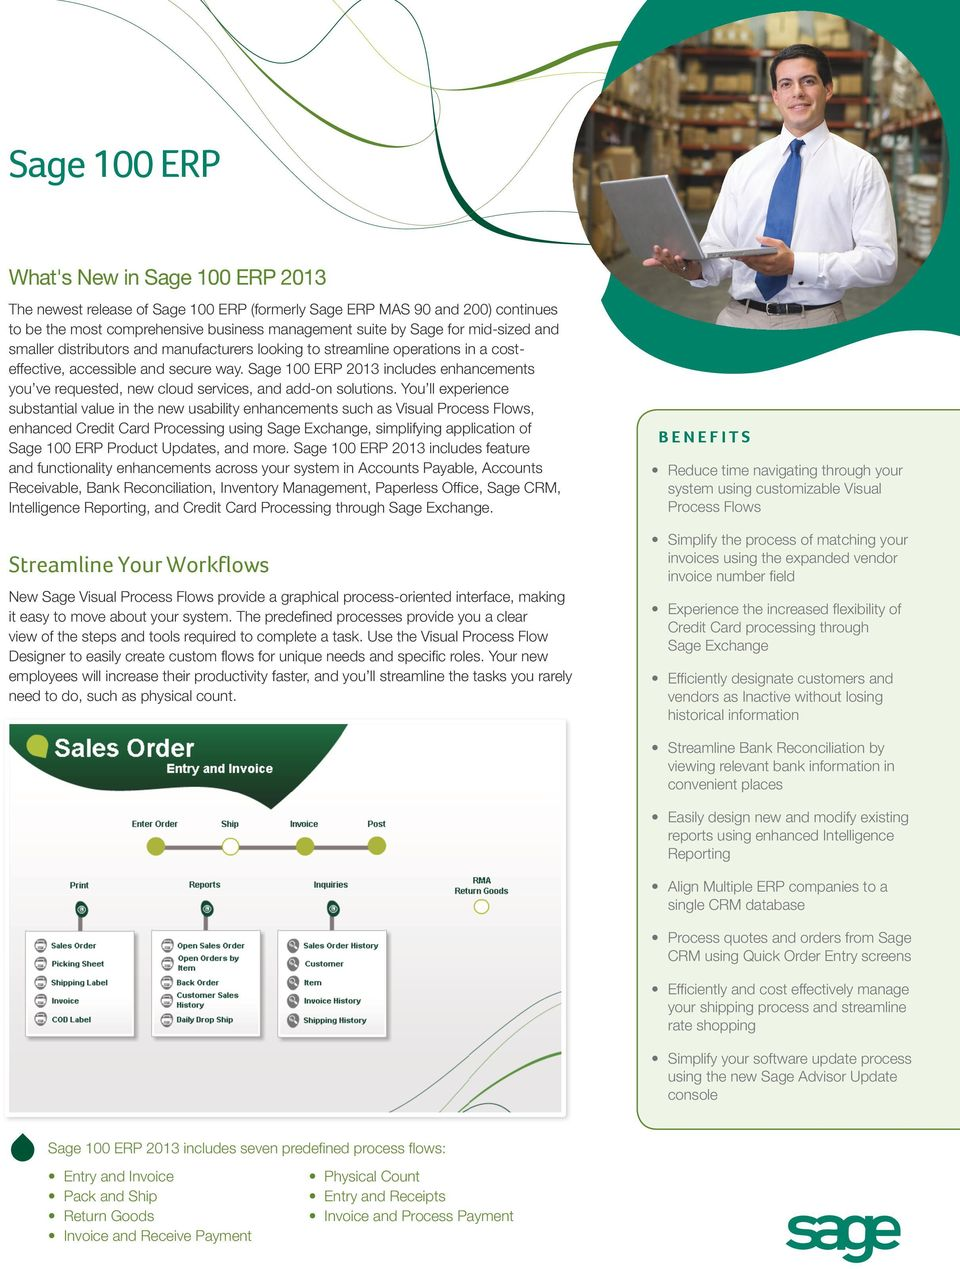 Sage 100 ERP 2013 includes enhancements you ve requested, new cloud services, and add-on solutions.